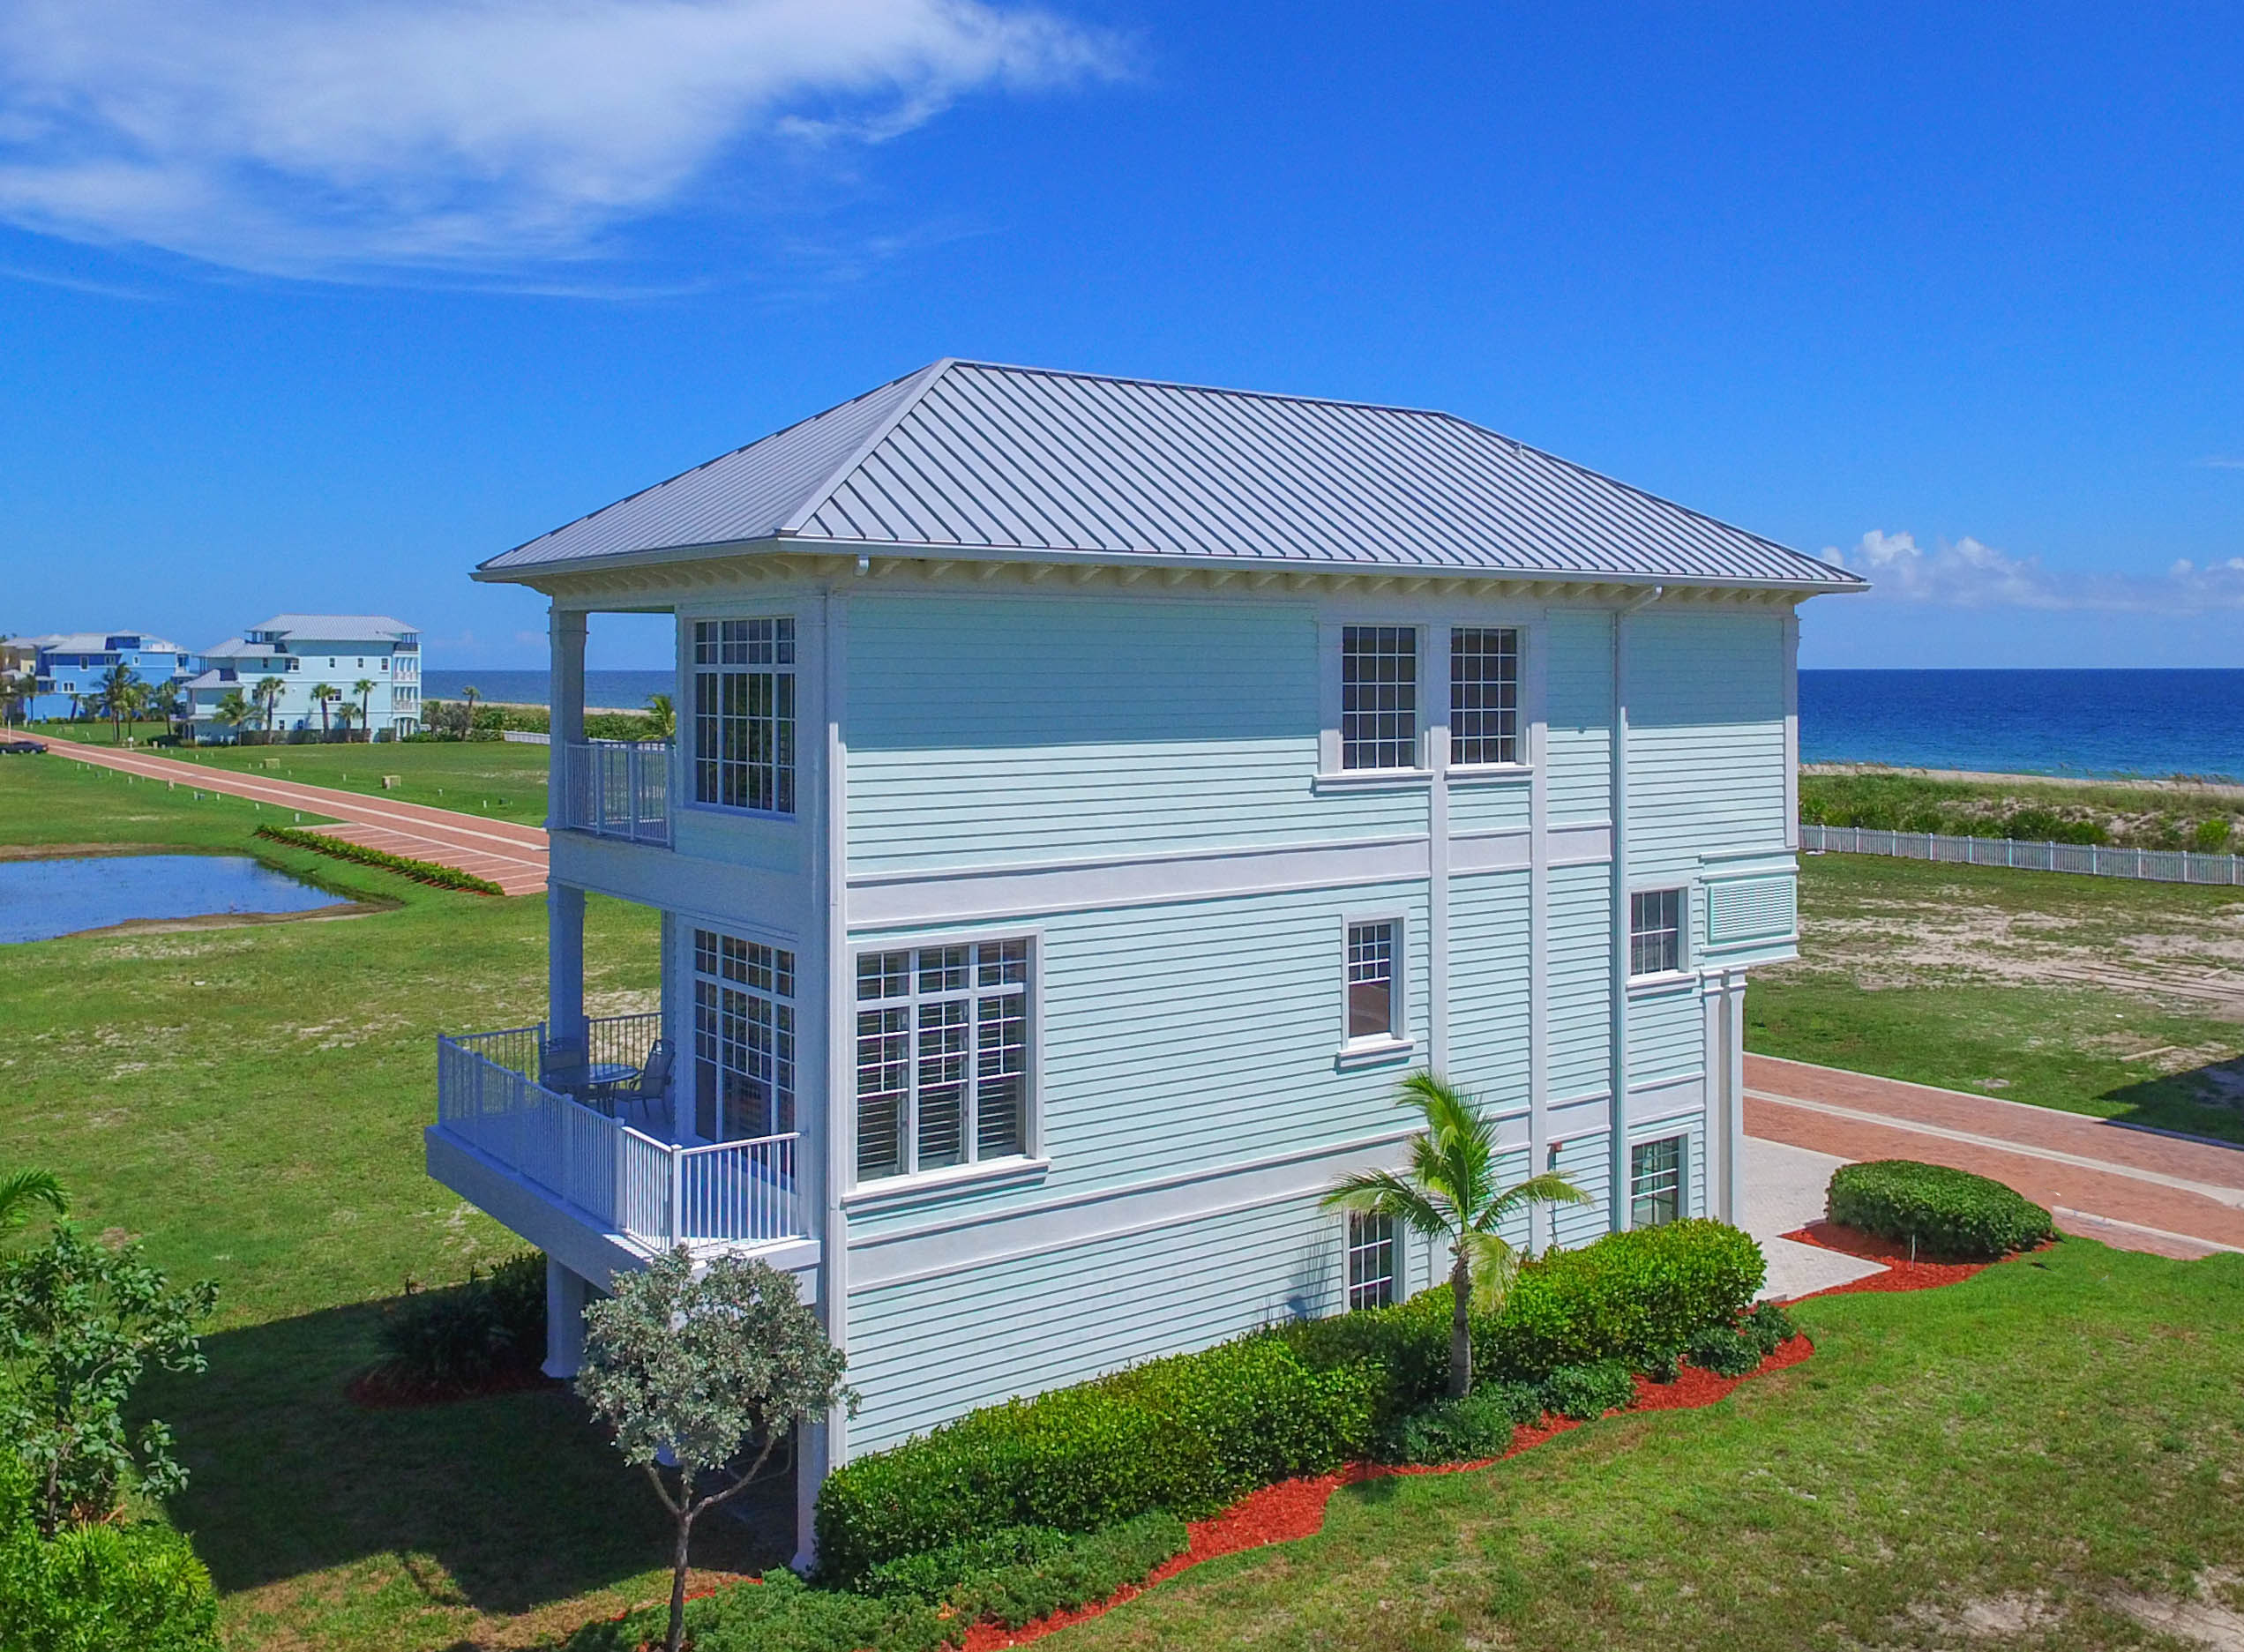 Casa Unifamiliar por un Venta en 4917 Watersong Way Hutchinson Island, Florida, 34949 Estados Unidos